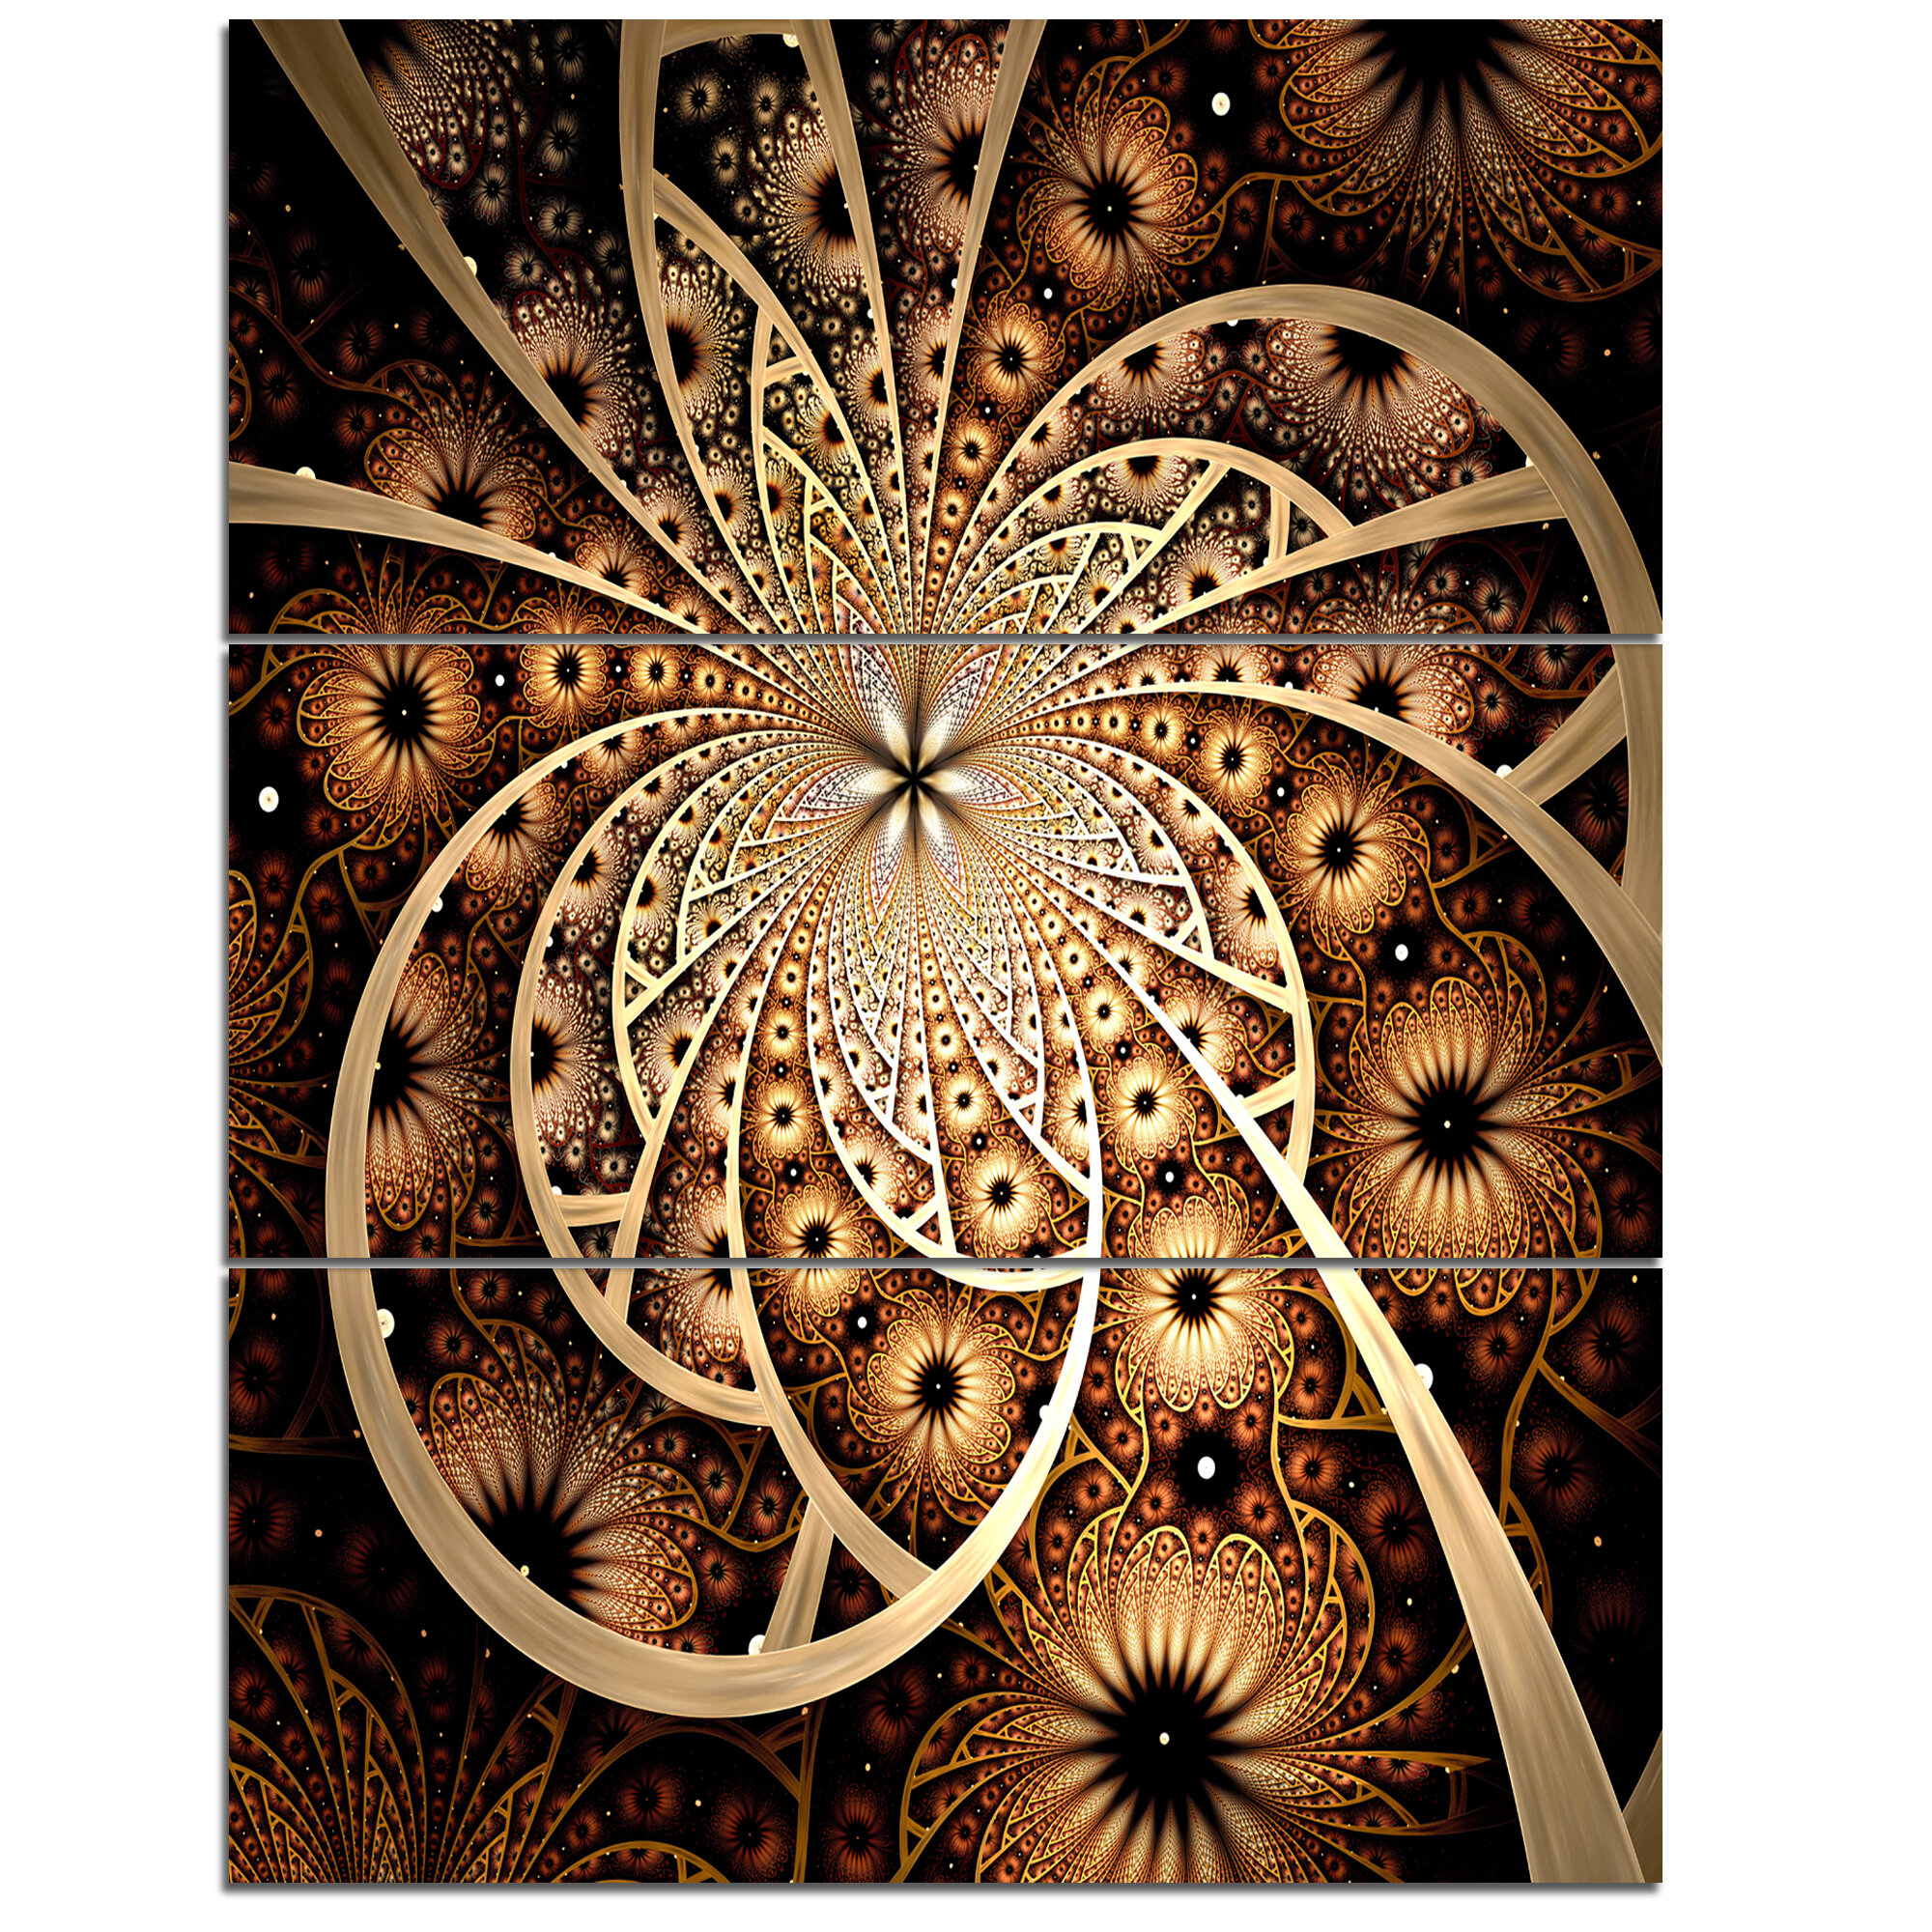 Designart Symmetrical Brown Black Fractal Flower 3 Piece Graphic Art On Wrapped Canvas Set Wayfair